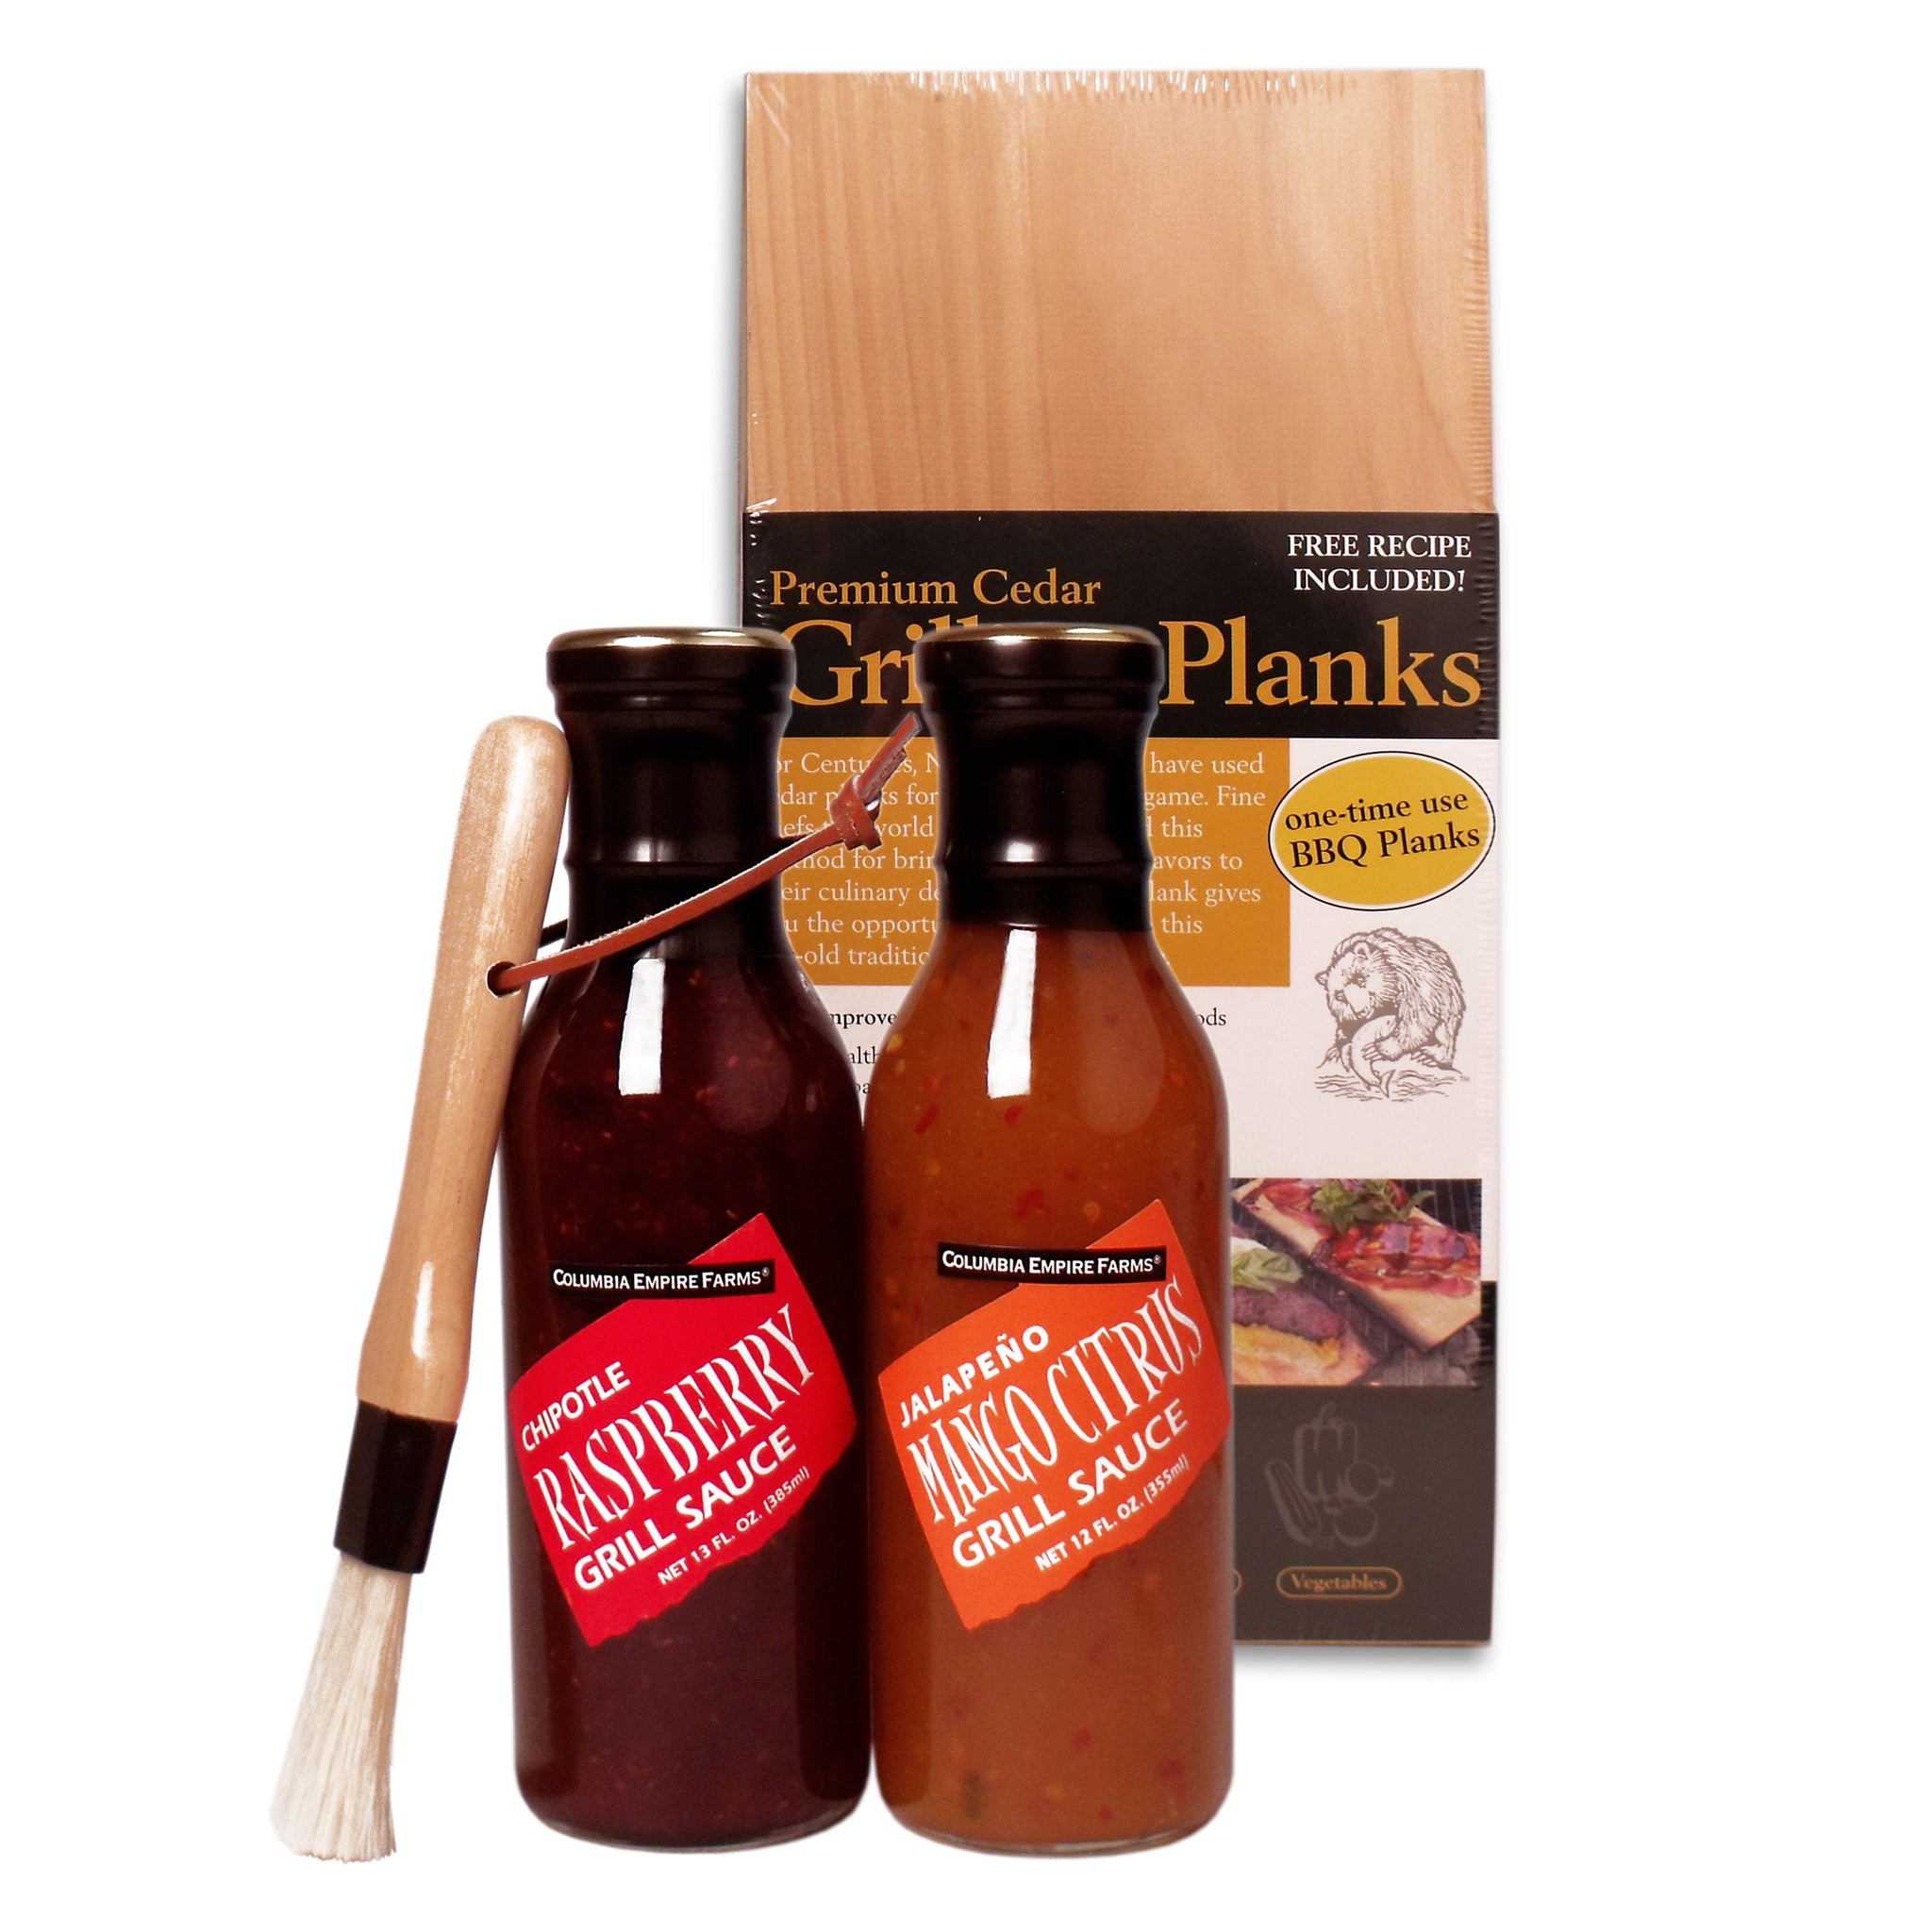 Sweet & Zesty Grill & Glaze Gift Bag